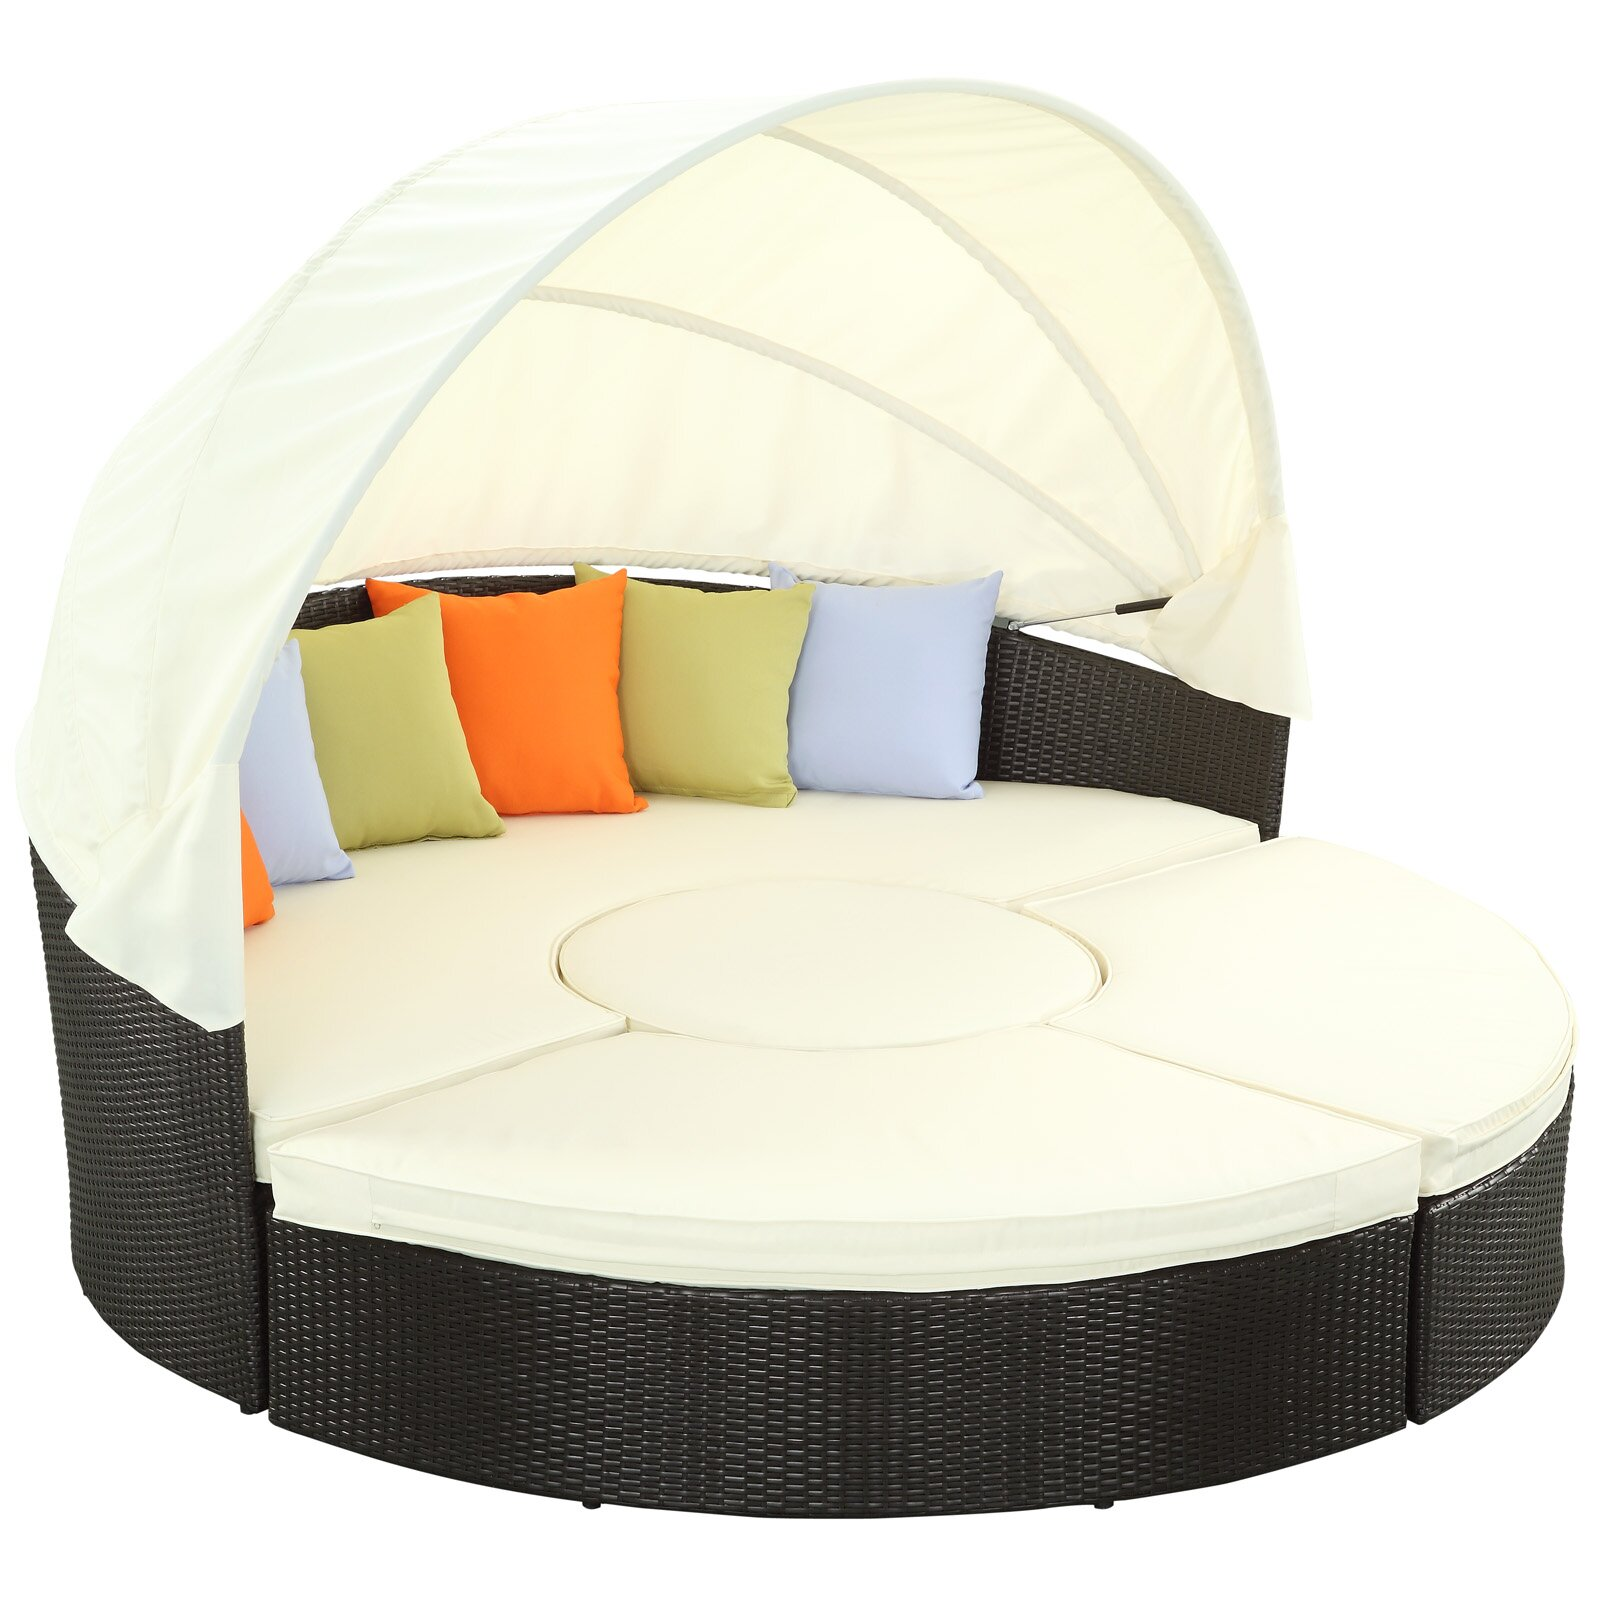 Modway Quest Canopy Daybed with Cushions & Reviews